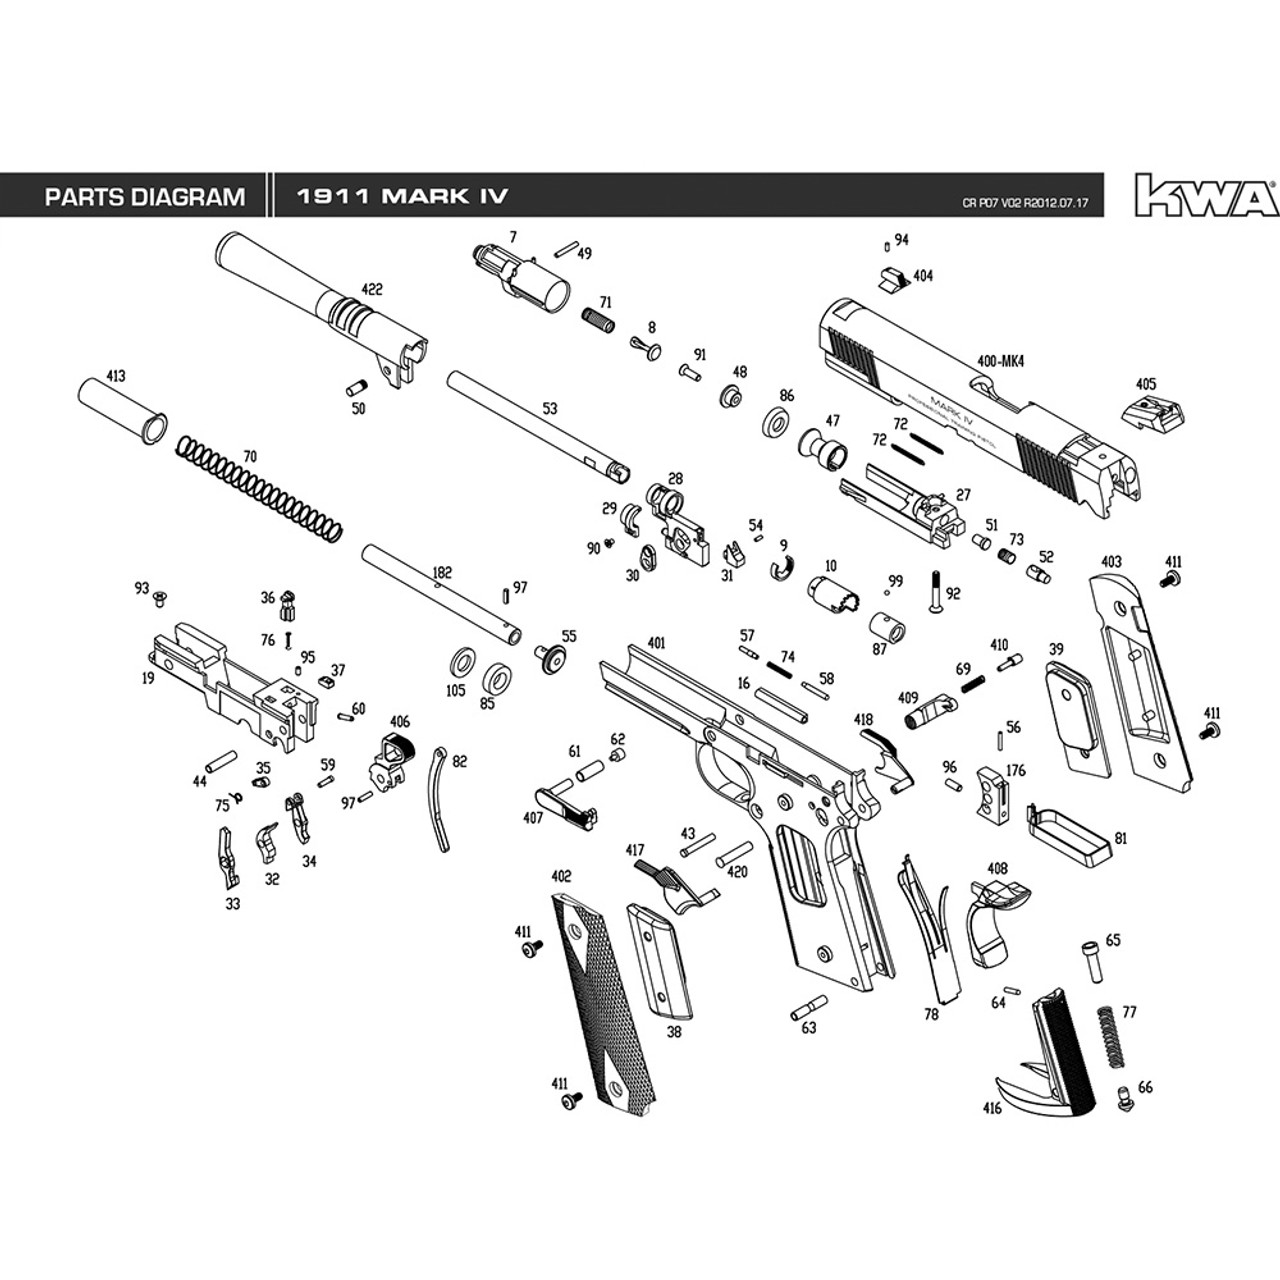 Wondrous Kwa Airsoft 1911 Mk Iv Pistol Diagram Mir Tactical Wiring Cloud Hisonuggs Outletorg